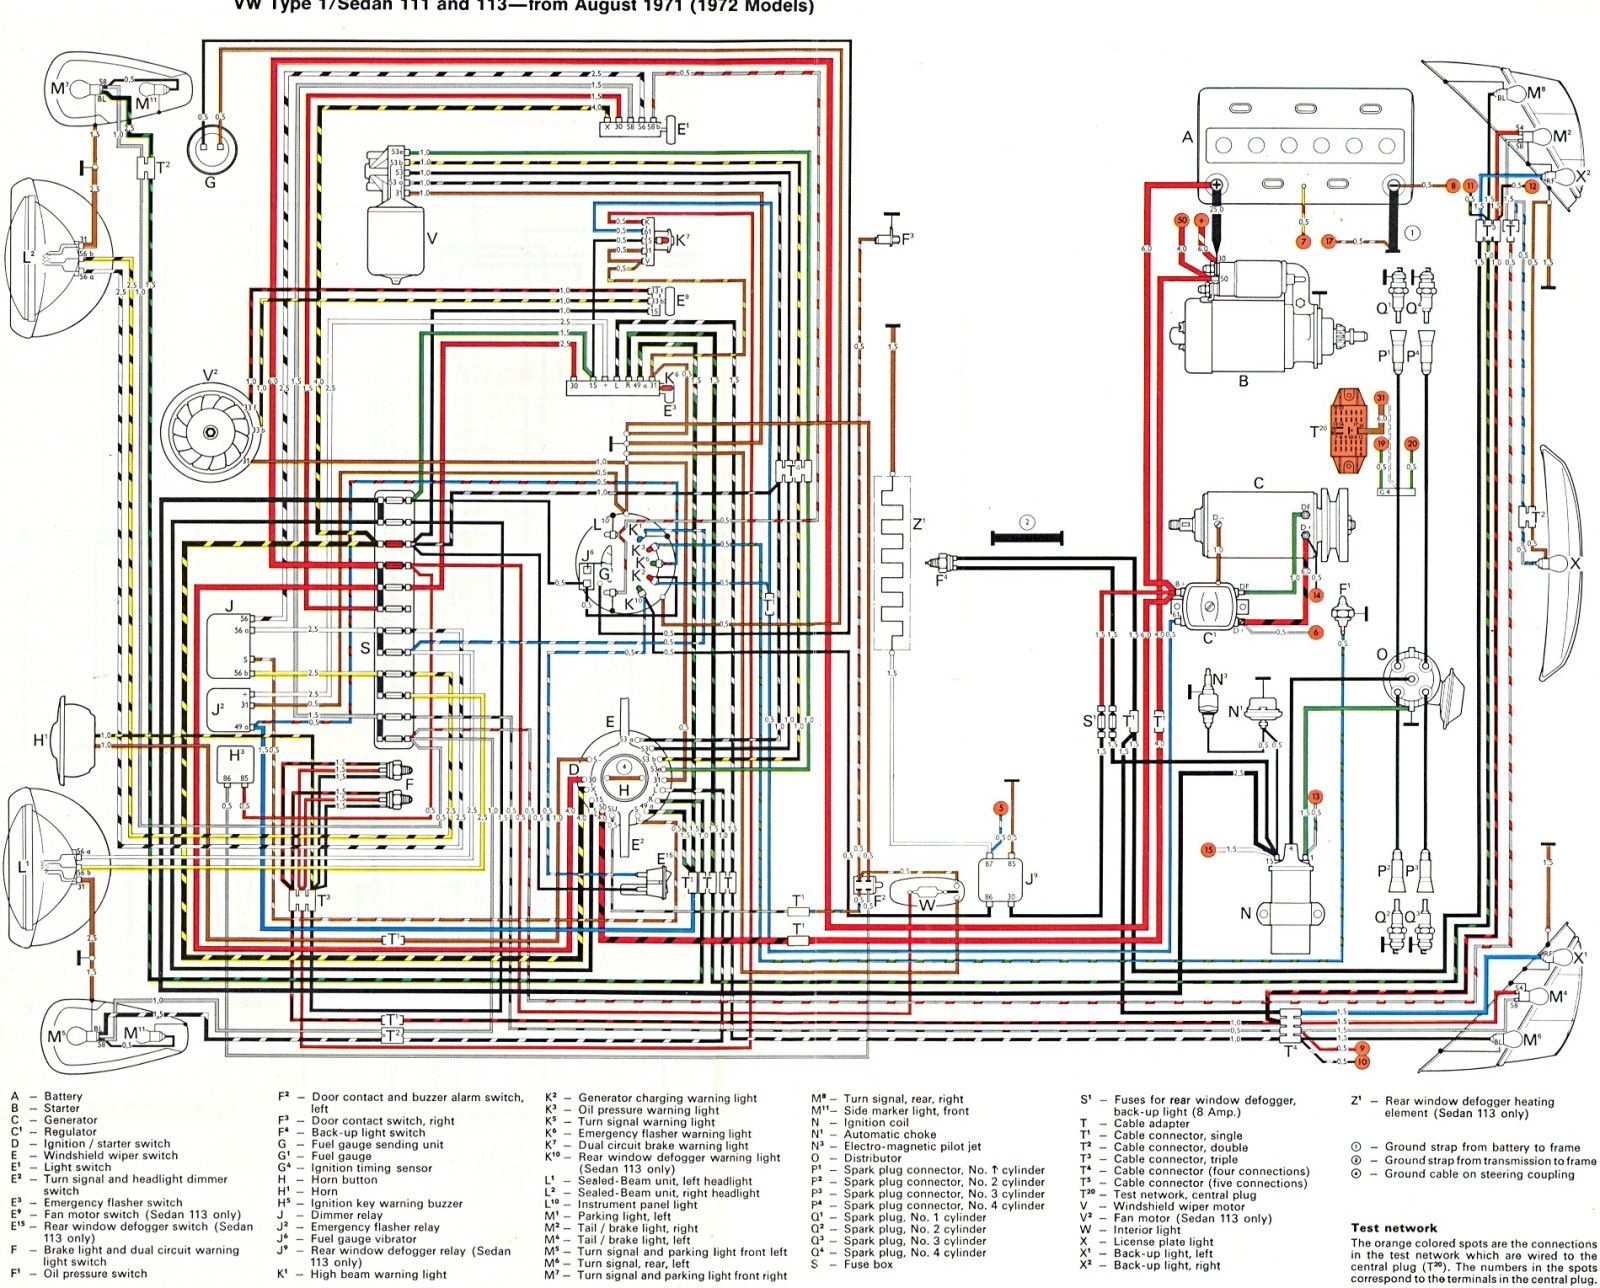 Pin By Strahinja Baki Kuzmanovic On Vw Buba Pinterest Cars And Two Relay Based Motorcycle Alarm Circuits Motorcycles Bugs Beetles Hands Software Bug Insects